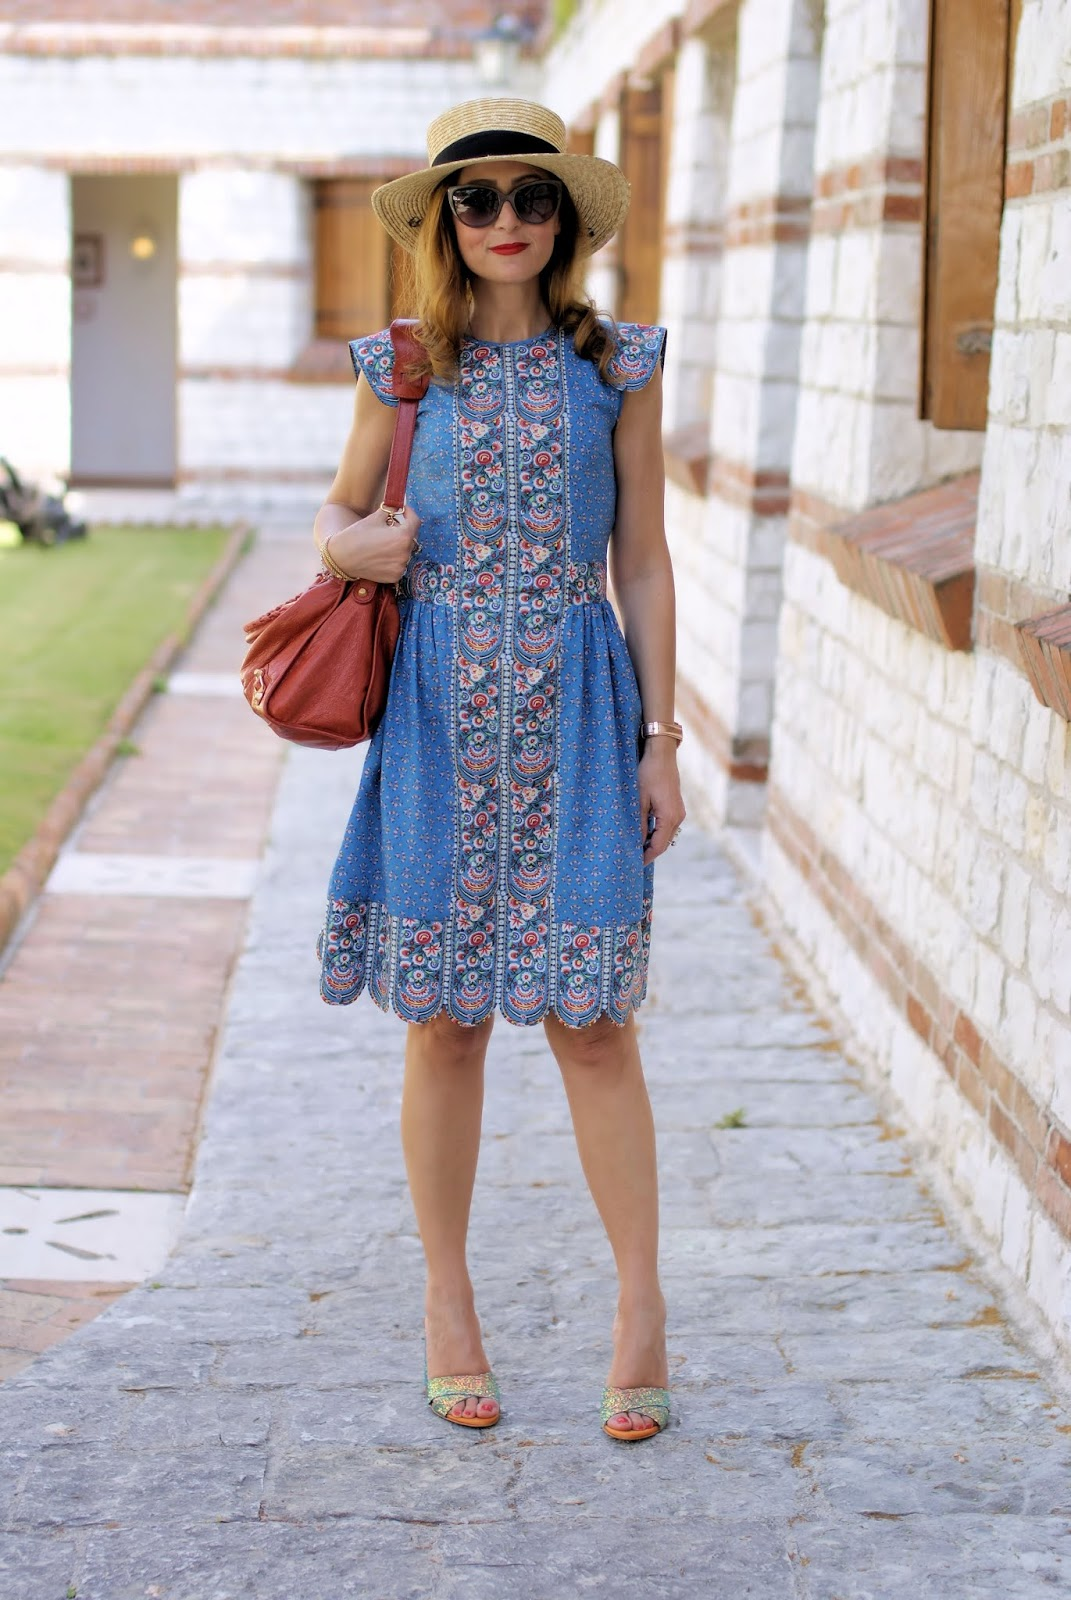 Vintage folk style summer dress with matryoshka print on Fashion and Cookies fashion blog, fashion blogger style